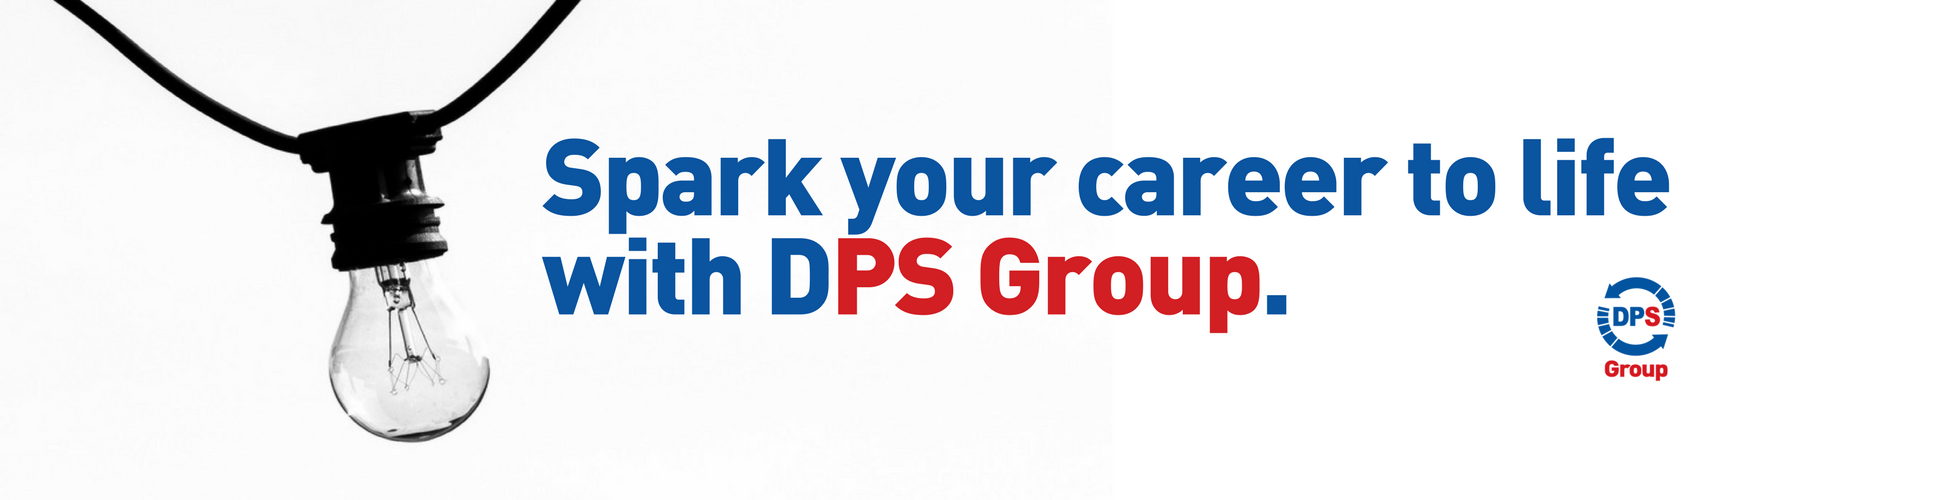 DPS Group Careers